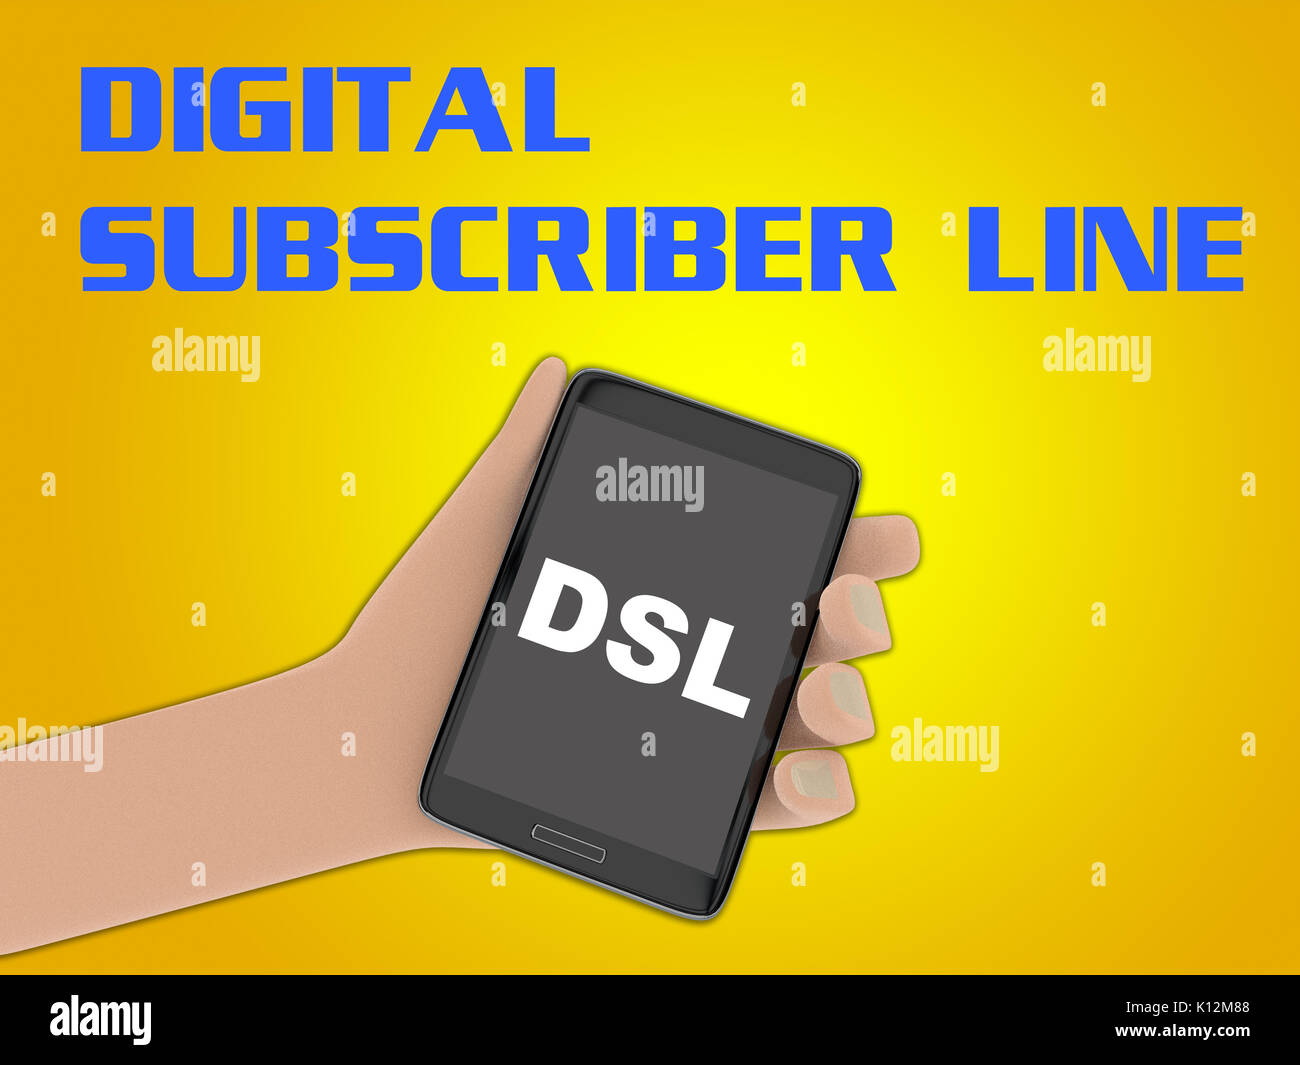 3D illustration of 'DSL' script on the screen of a cellulr phone held by hand, isolated on yellow gradient, with the script 'DIGITAL SUBSCRIBER LINE'  - Stock Image